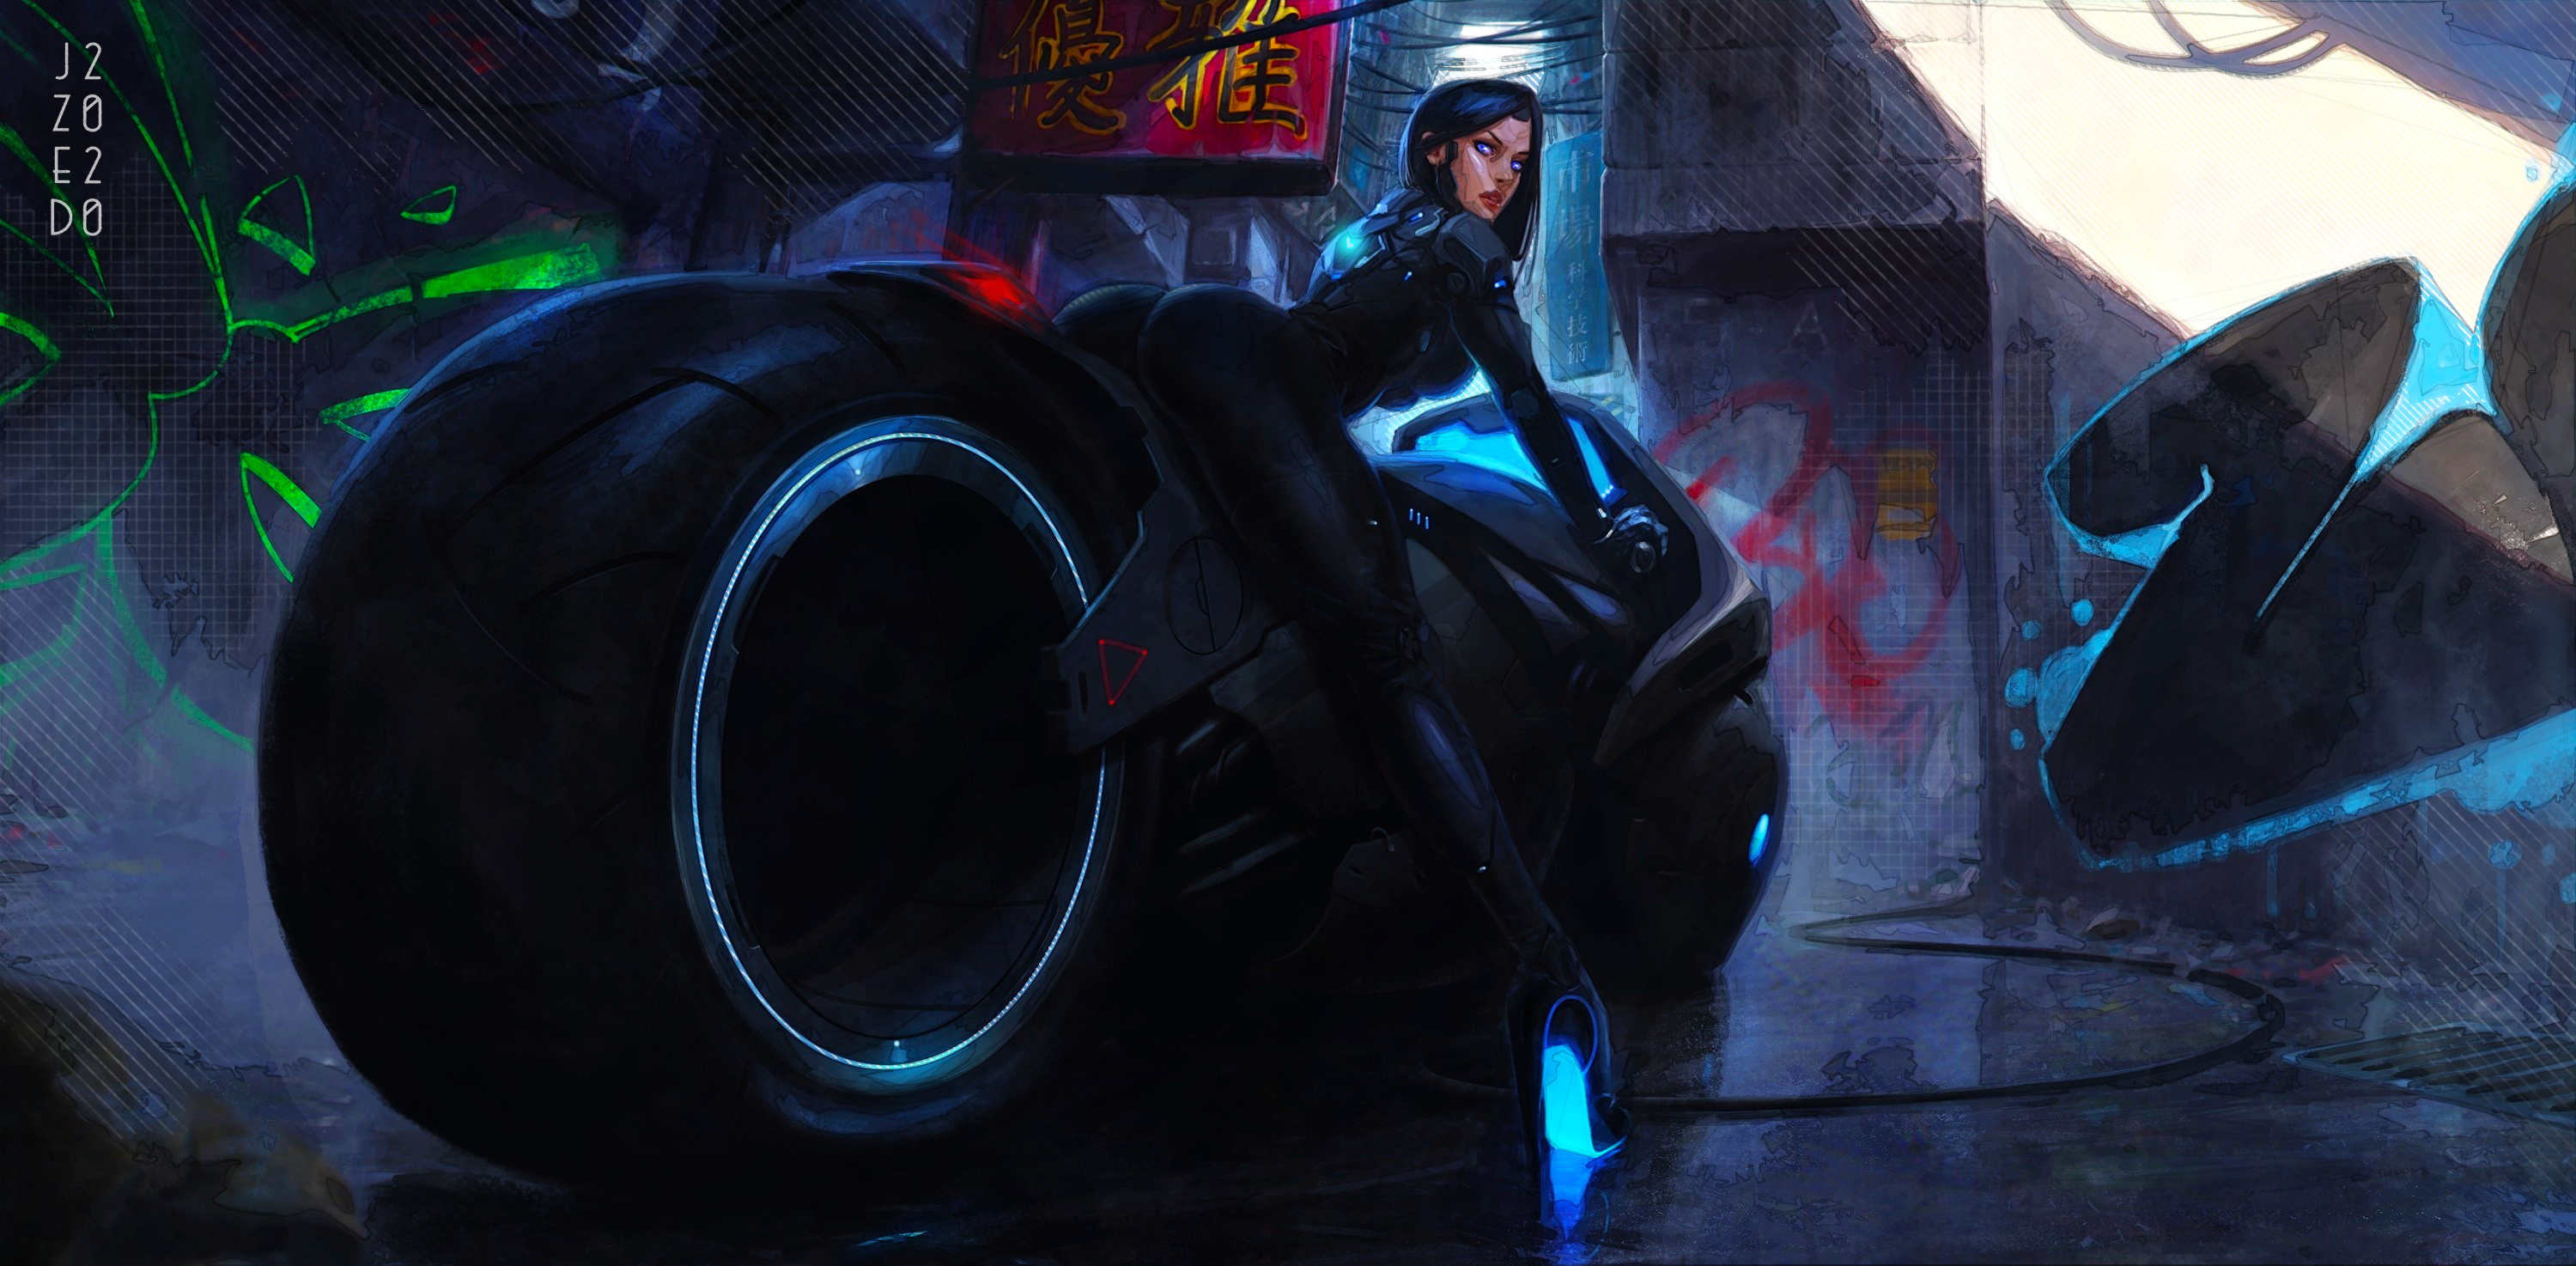 Cyber Cafe Racer - 4